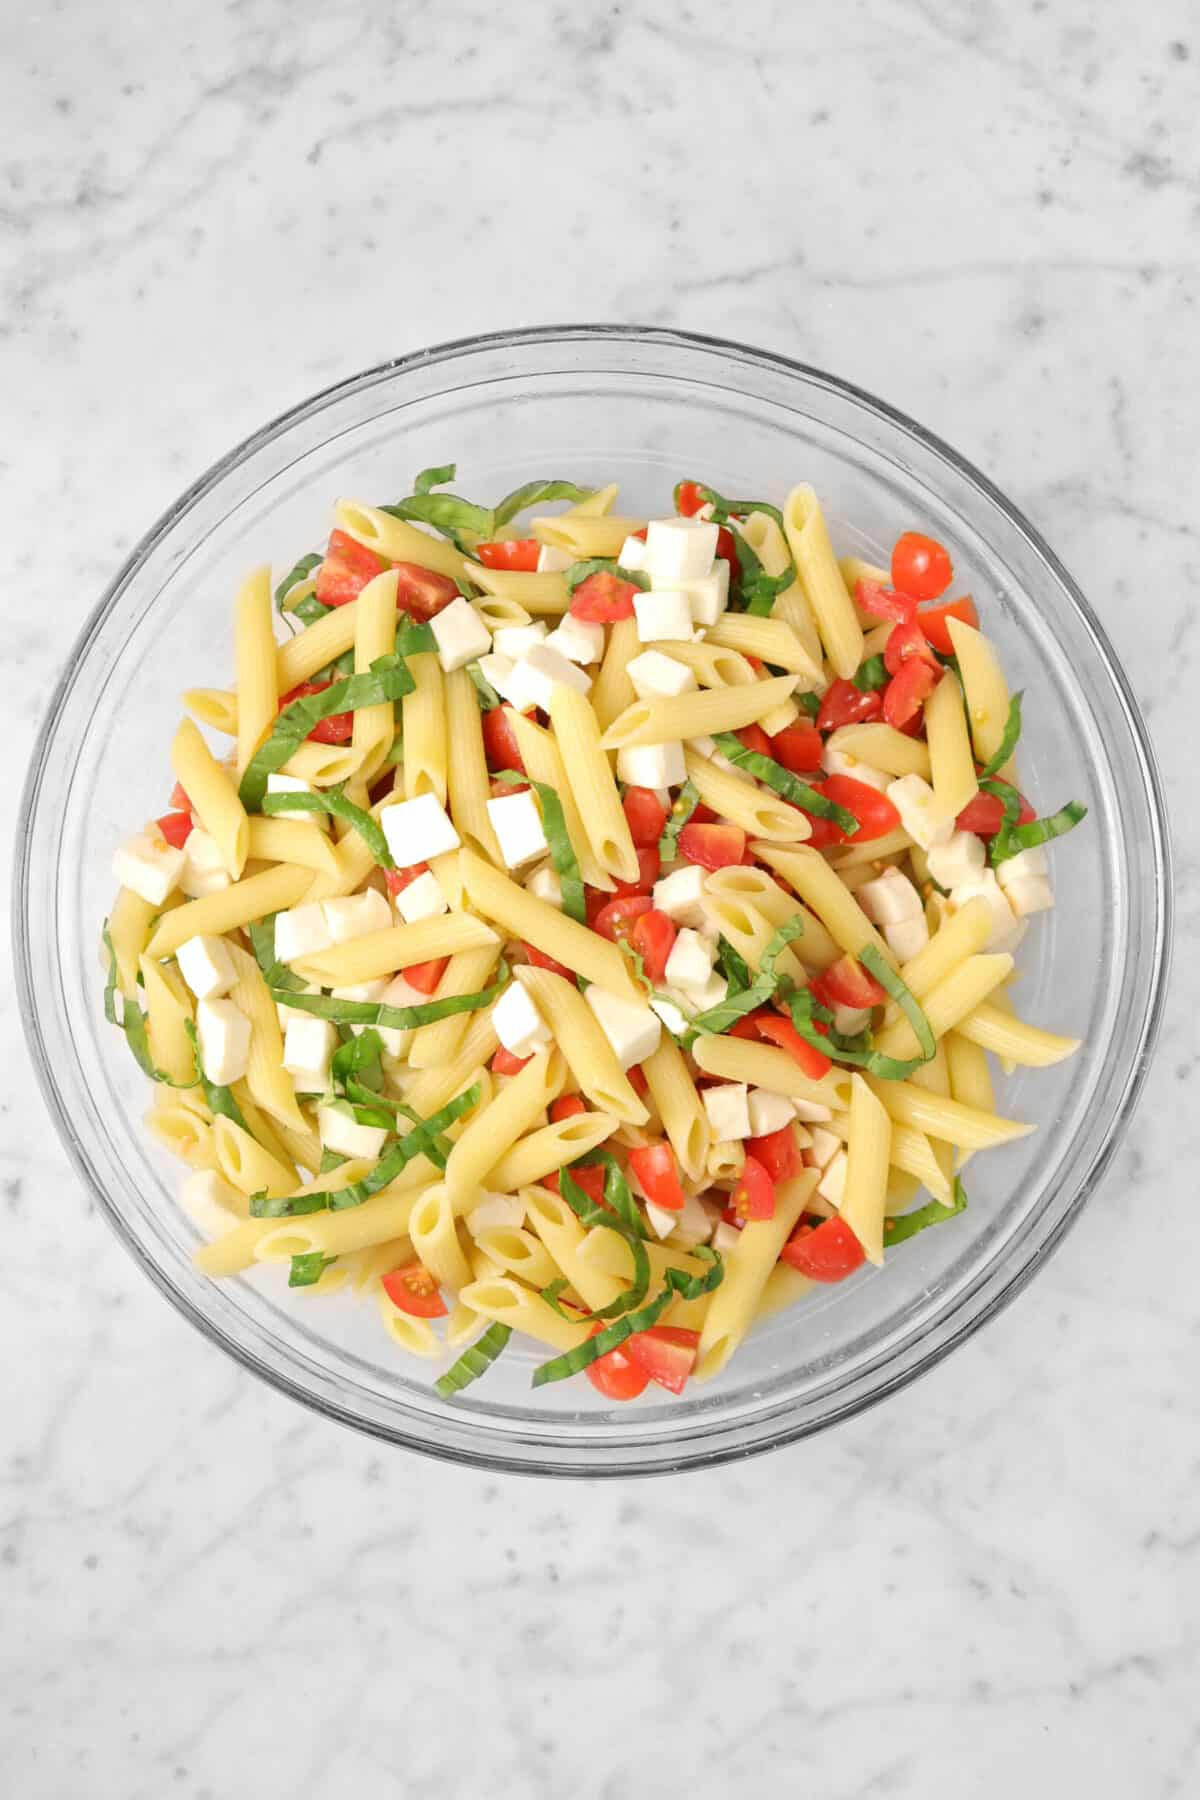 caprese pasta salad in a glass bowl on a marble counter